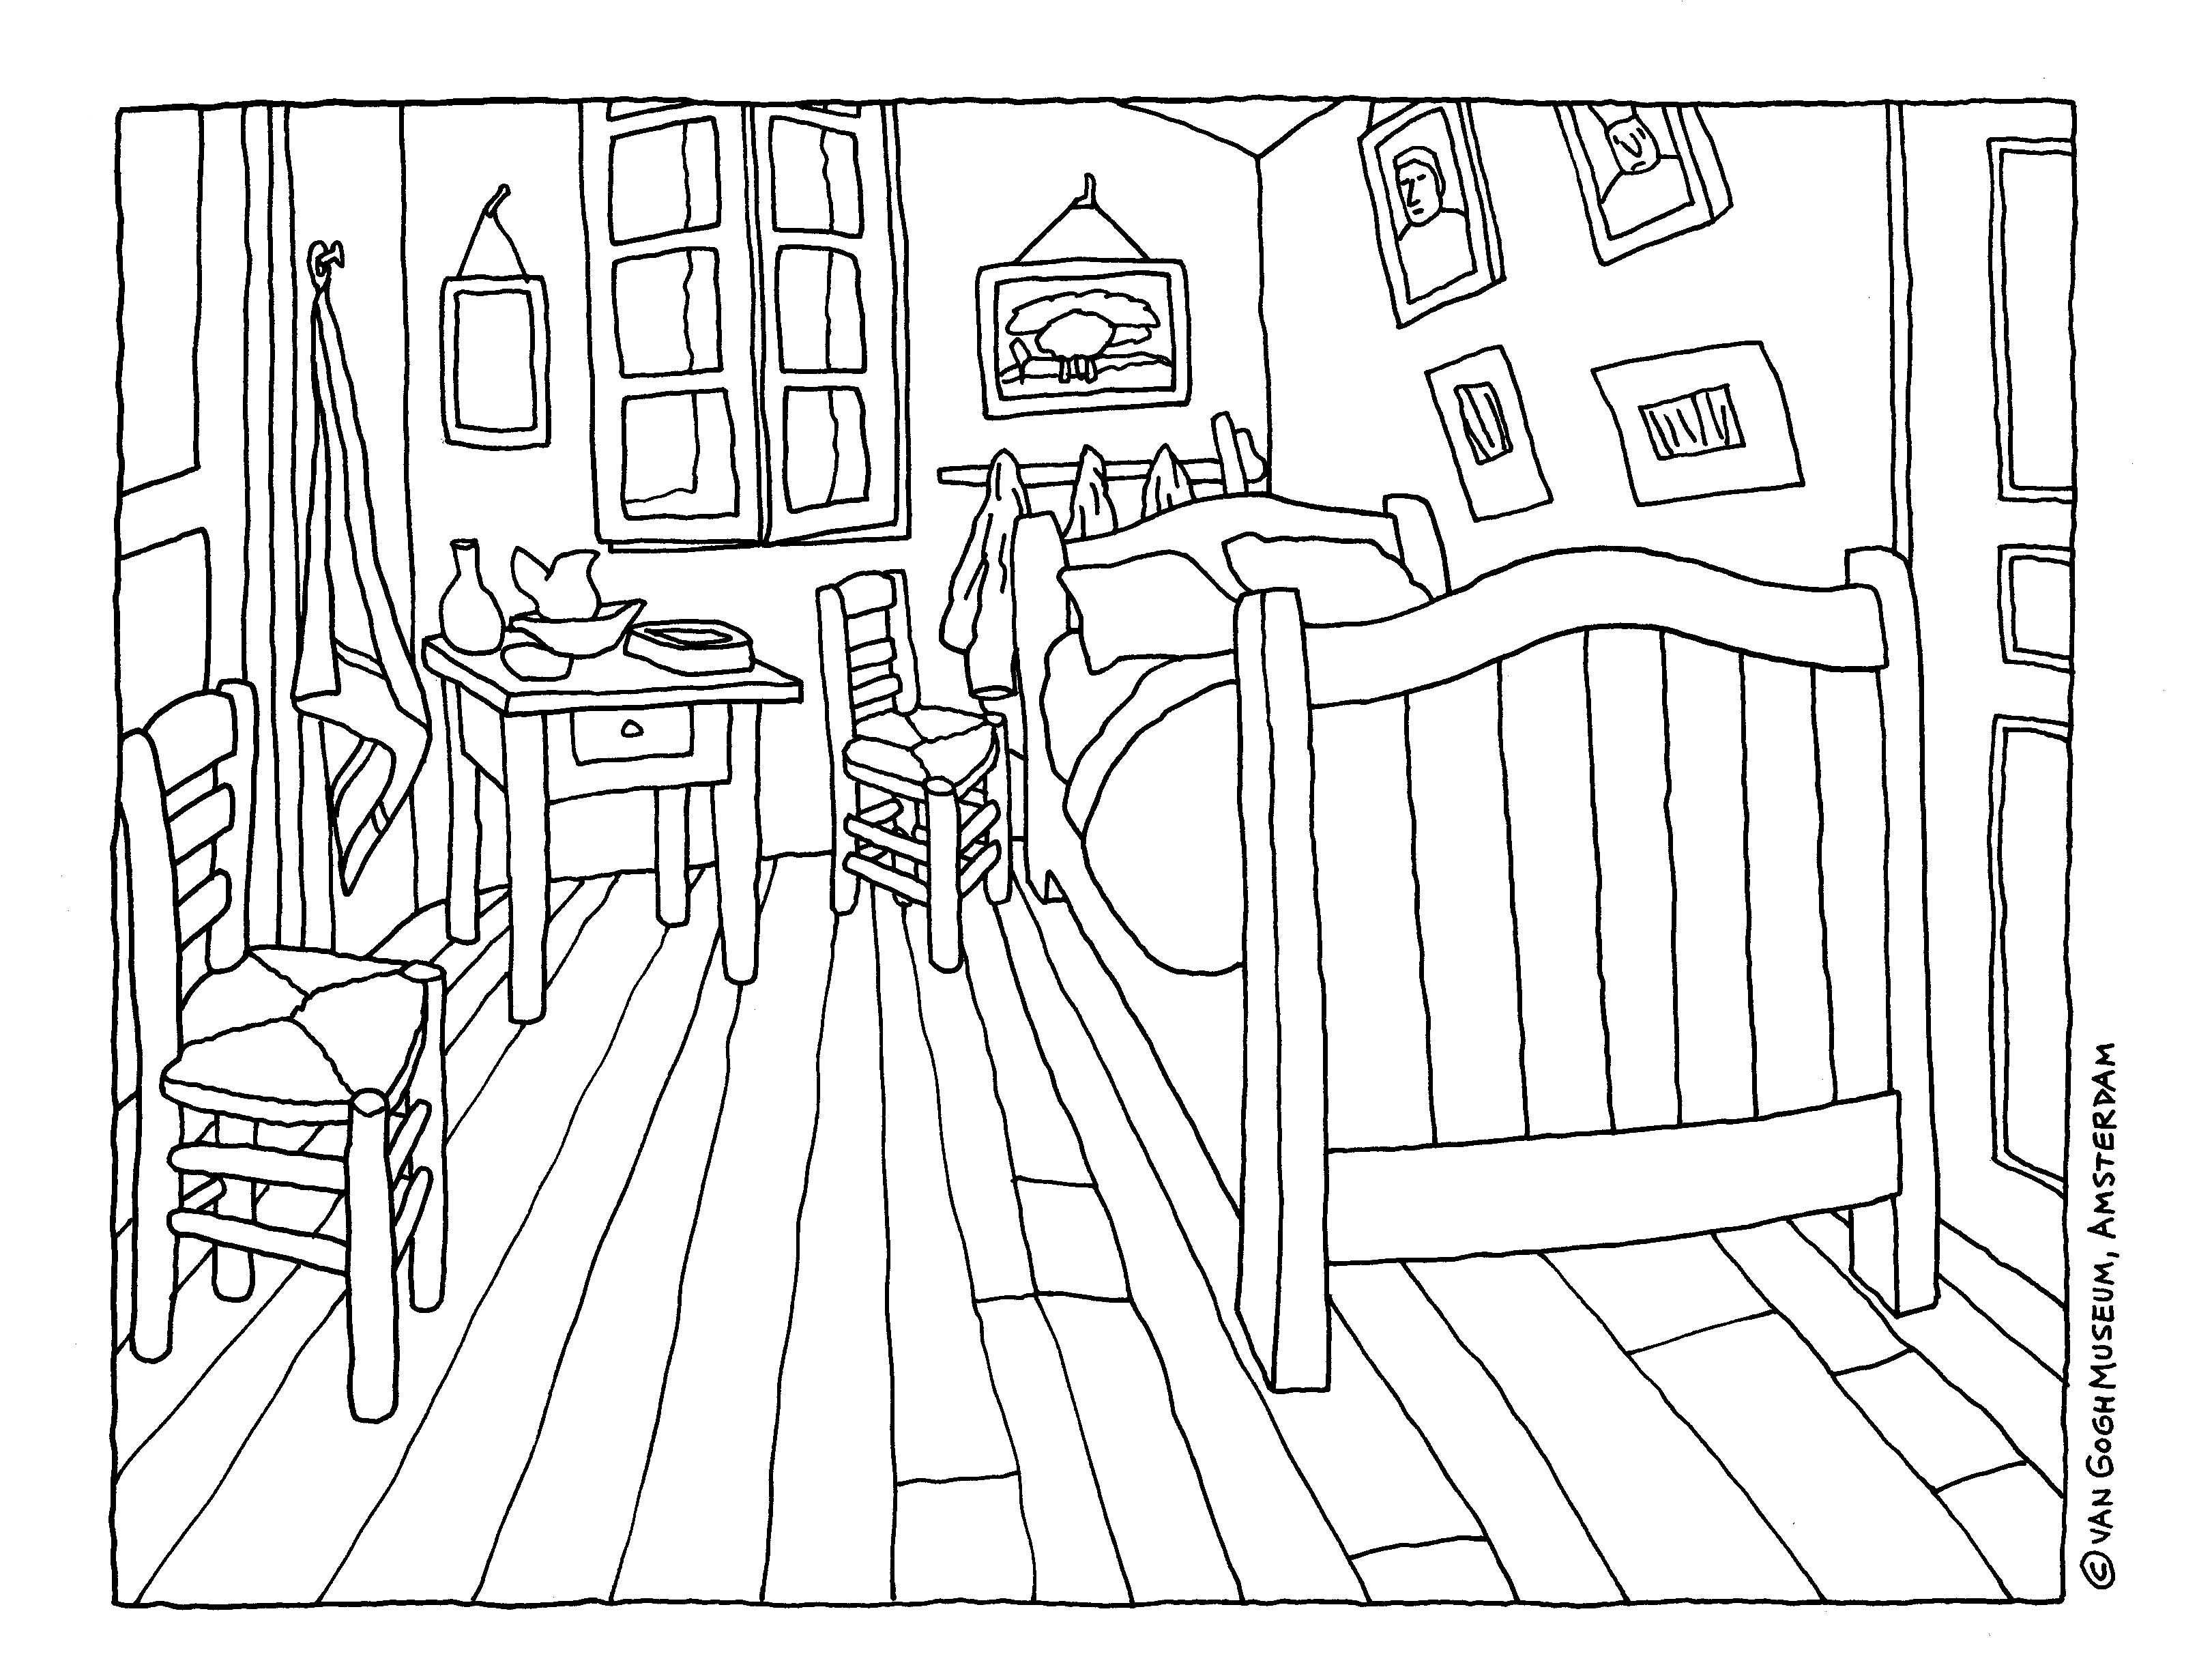 Colouring Page Of Vincent Van Gogh S Masterpiece The Bedroom